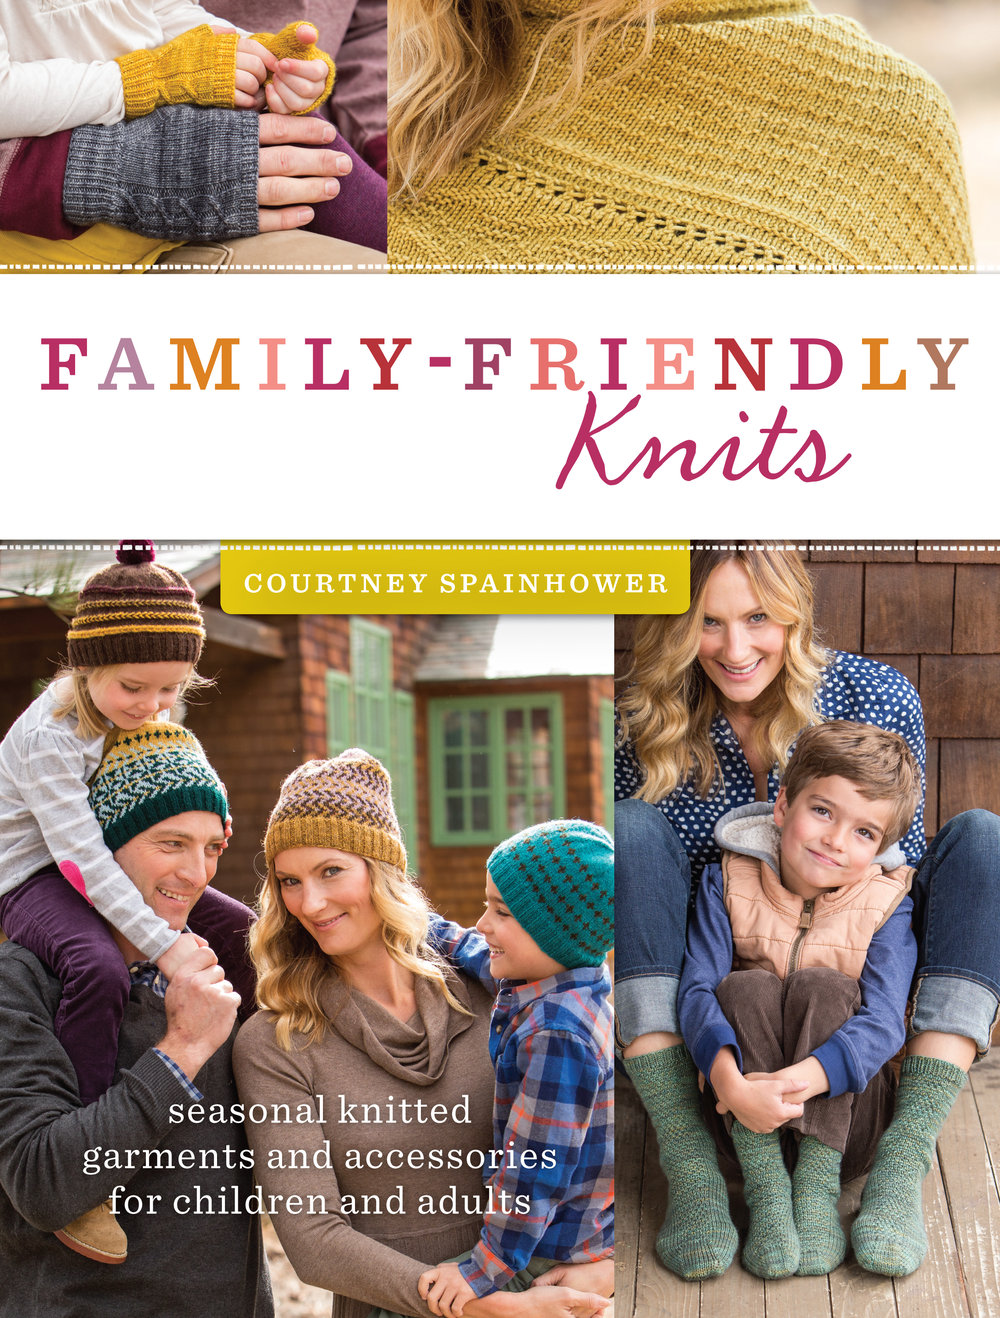 Family-Friendly Knits - Family-Friendly Knits: Seasonal Knitted Garments and Accessories for Children and Adultsby Courtney SpainhowerKnitwear designer and Mom, Courtney Spainhower offers up a collection of knitting designs for your entire family in Family-Friendly Knits. From something special for a little one to garments and accessories for adults of any age, knit these seasonal designs with love!Projects include:A selection of comfy yet stylish pullovers and cardigans for every seasonChoose-your-own-adventure hats and cowls with interchangeable colorwork patternsA fabulously furry raglan sweater for your wild childA trio of fingerless mitts suitable for mama, papa, and babySocks for grown-ups and kids that are knit as one piece from cuff to cuff (to avoid